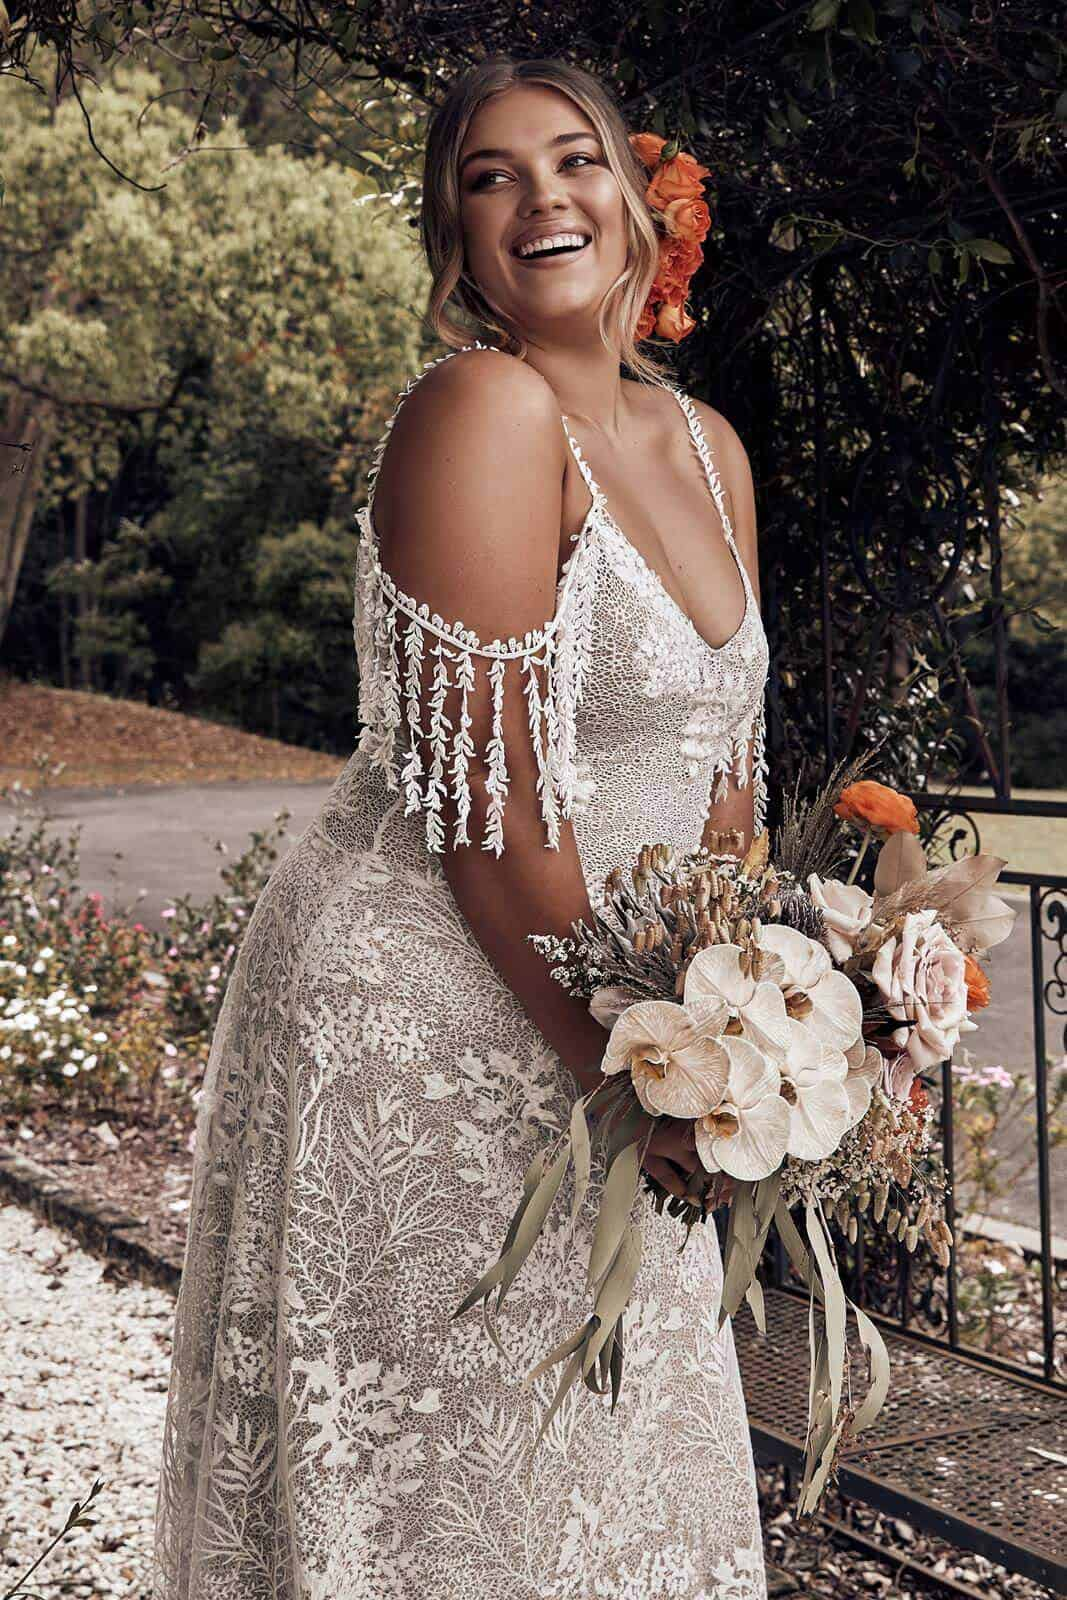 Elopement Wedding Dress for Curvy Brides Lace Embroided Texture Dress Intimate Wedding Dress Romantic Grace Loves Lace Sol (1)